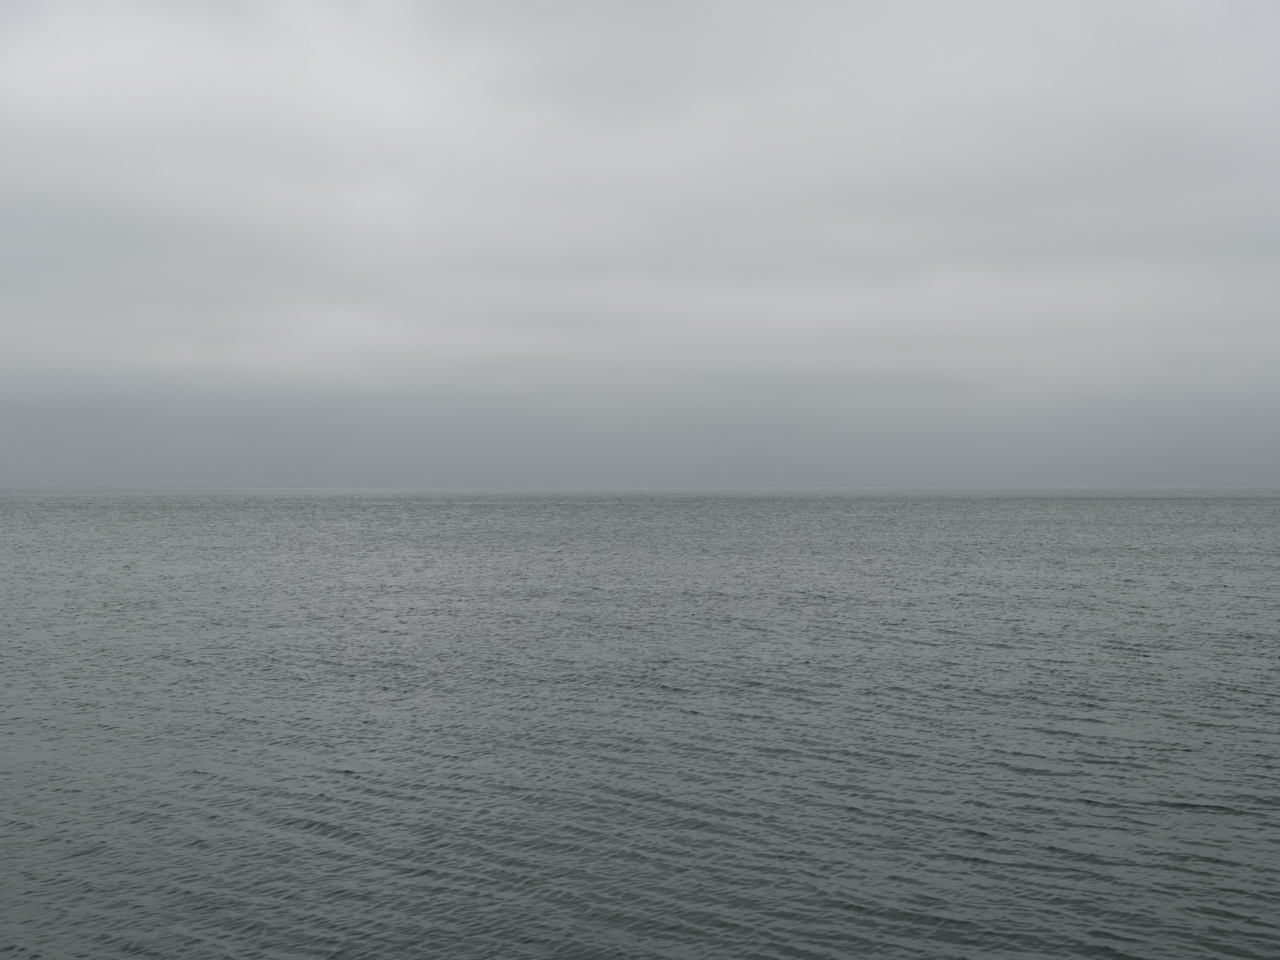 a gray day on the Lake, with heavy cloud cover and green lake waters